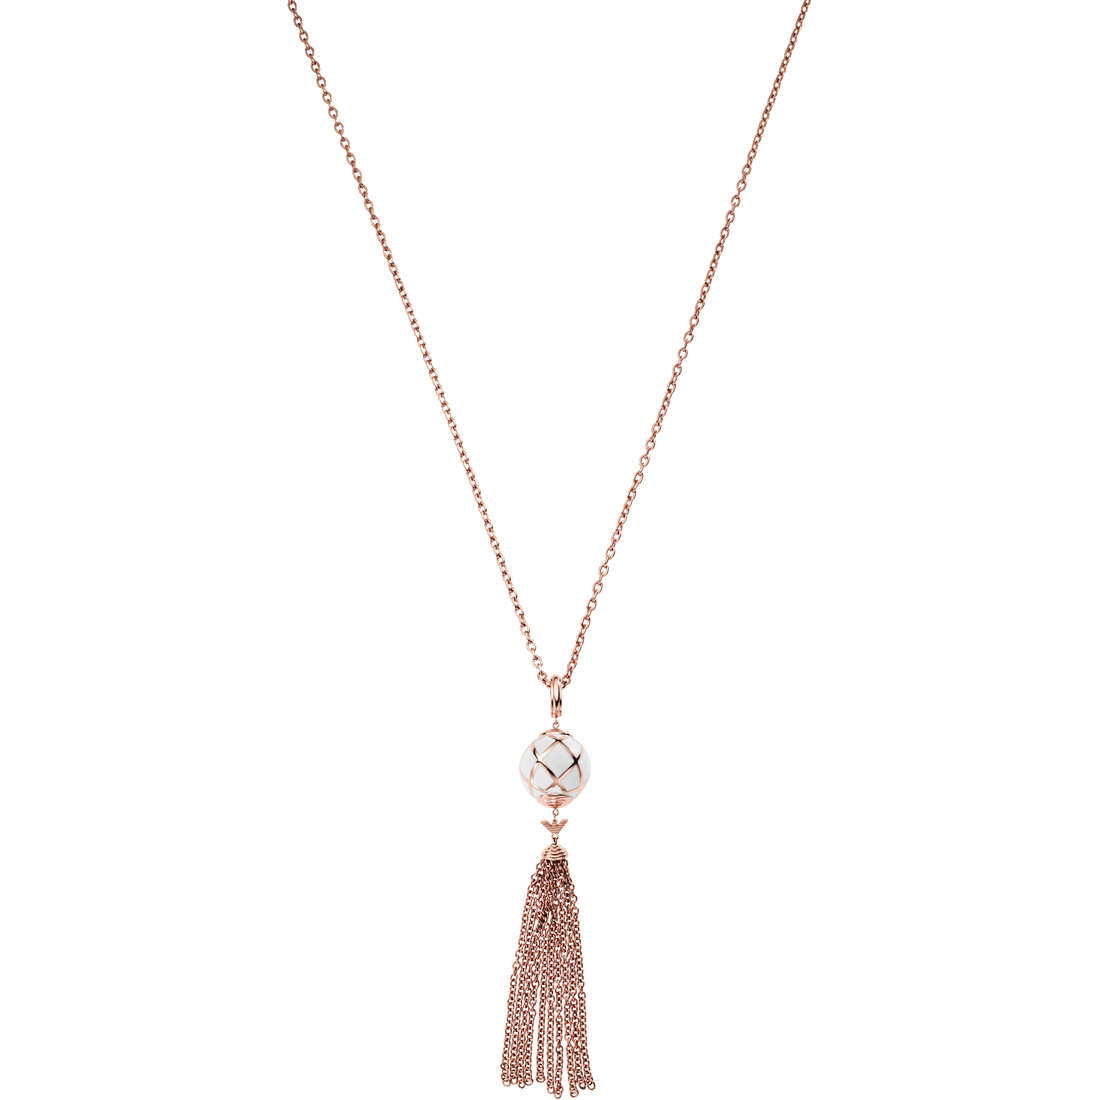 necklace woman jewellery Emporio Armani EGS1673221